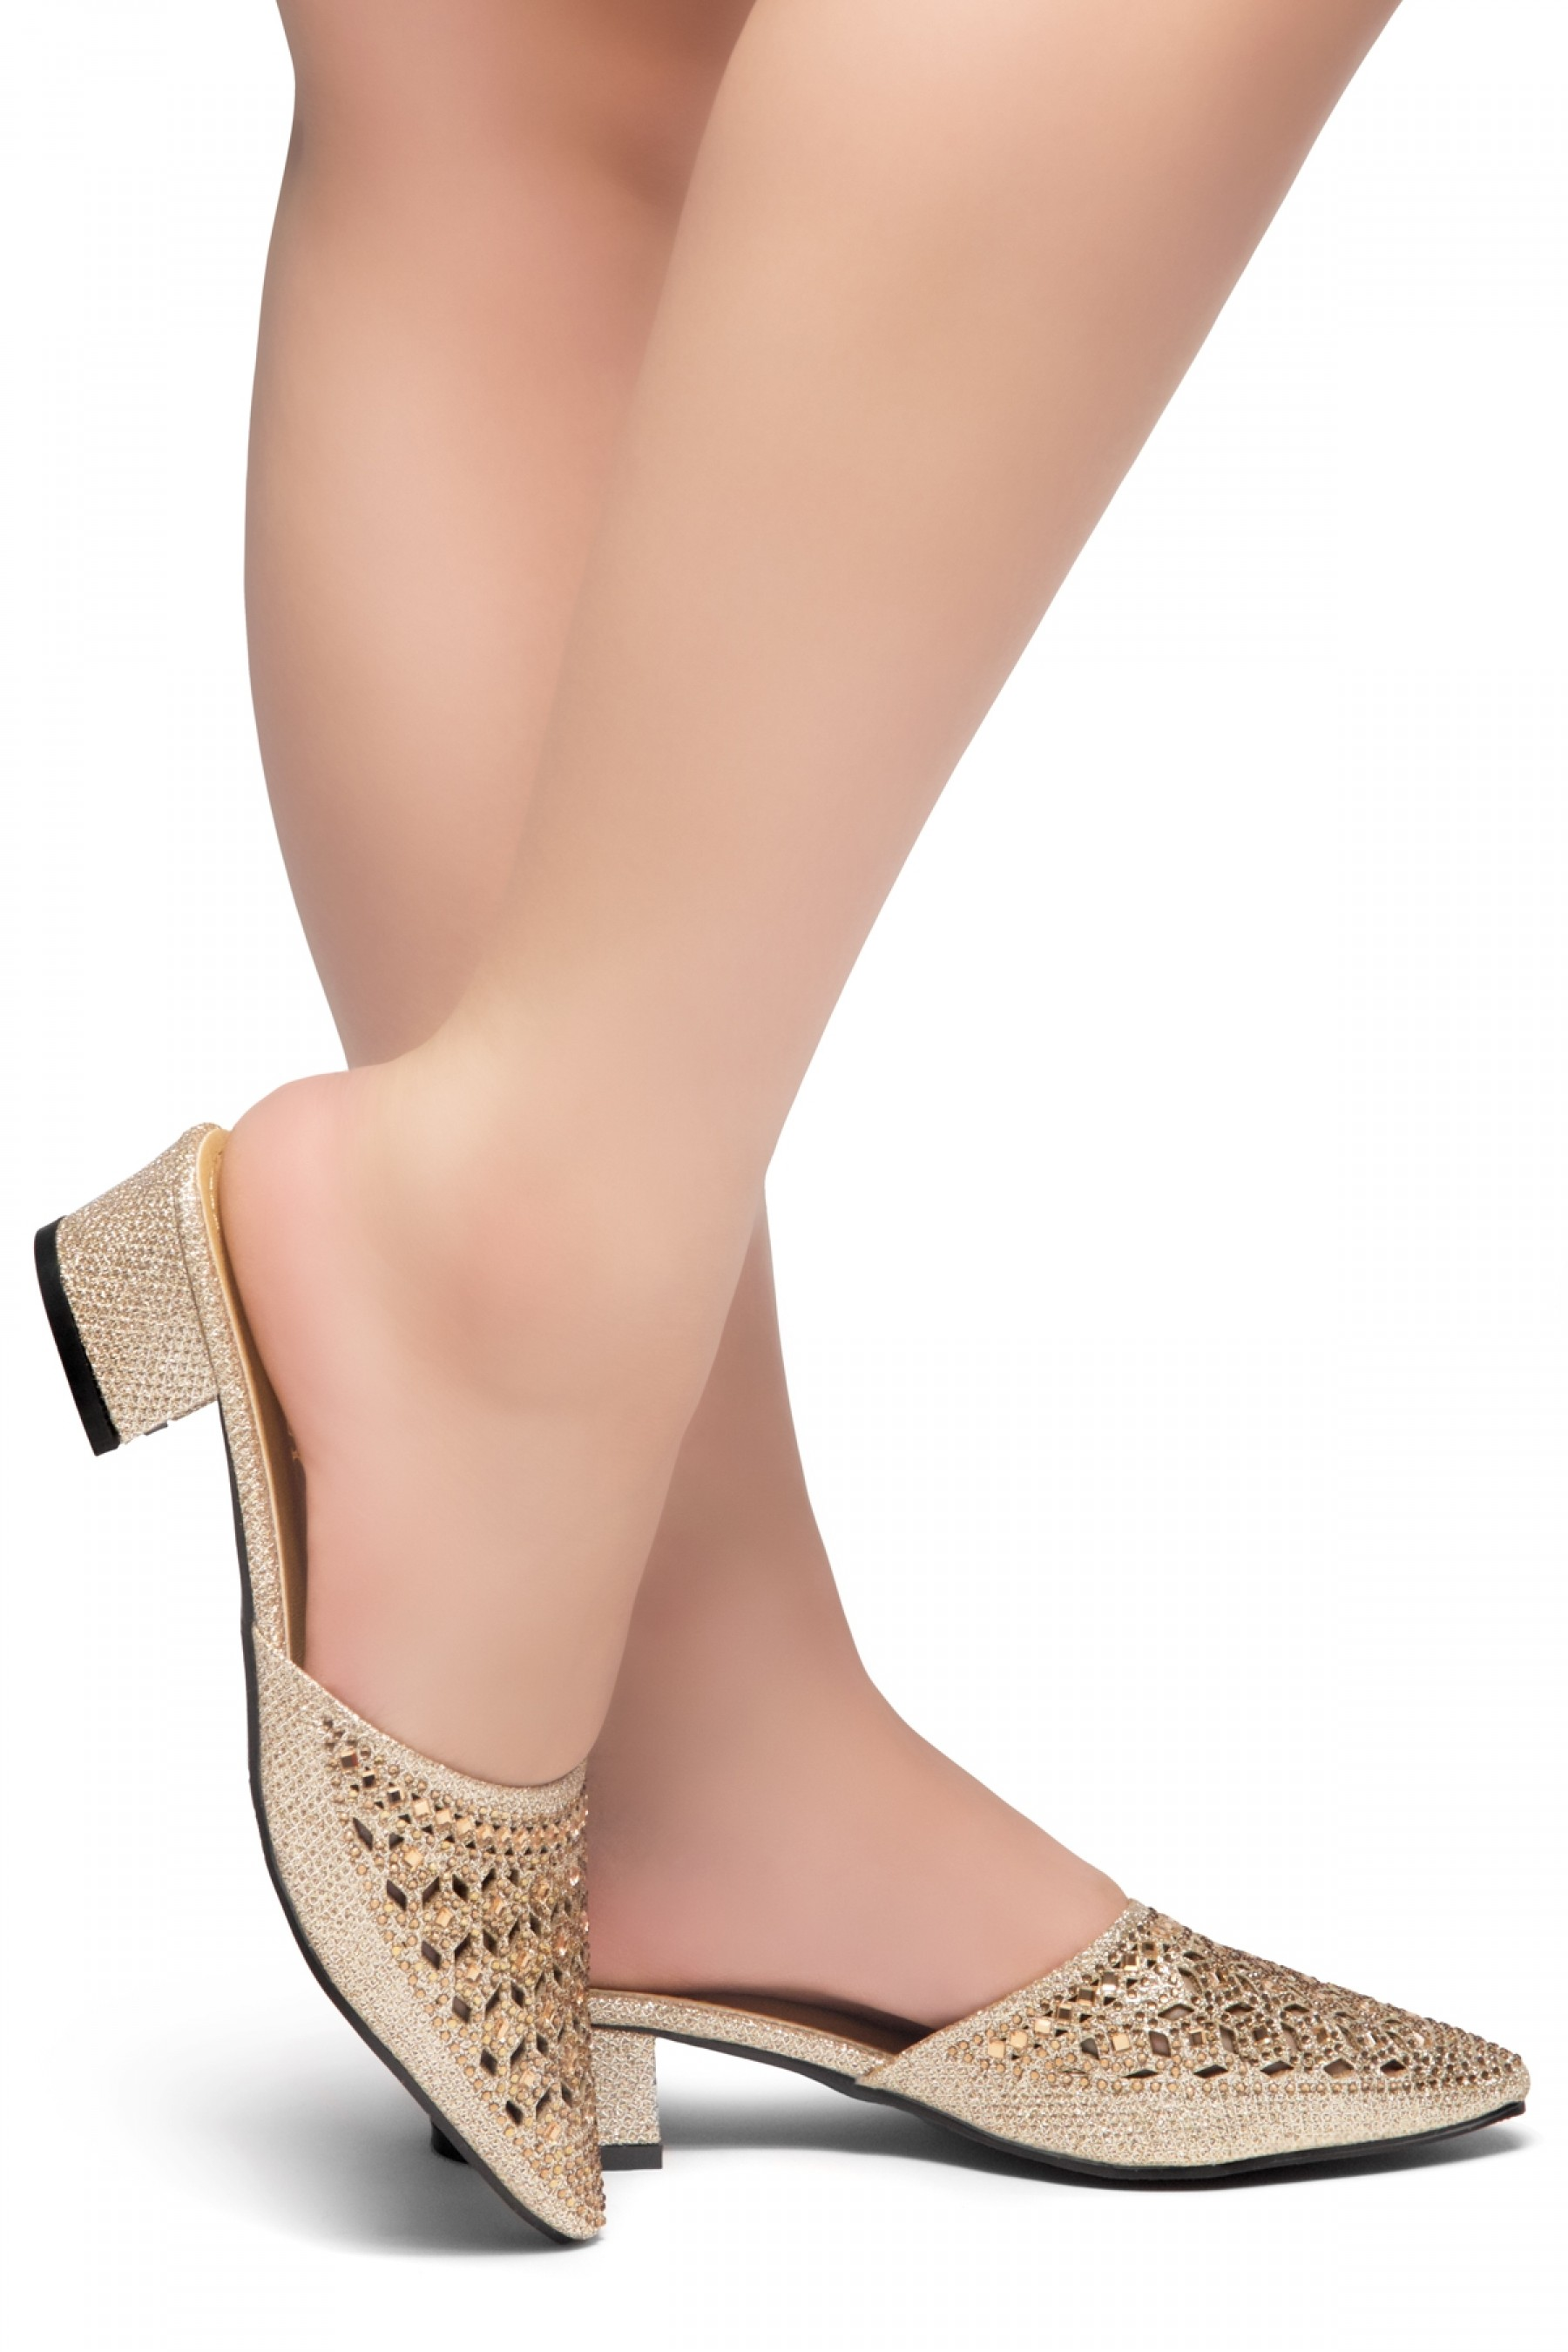 HerStyle SWEET TALK- Pointed Toe Stuck Heel jeweled embellishment vamp slipper (RoseGold)